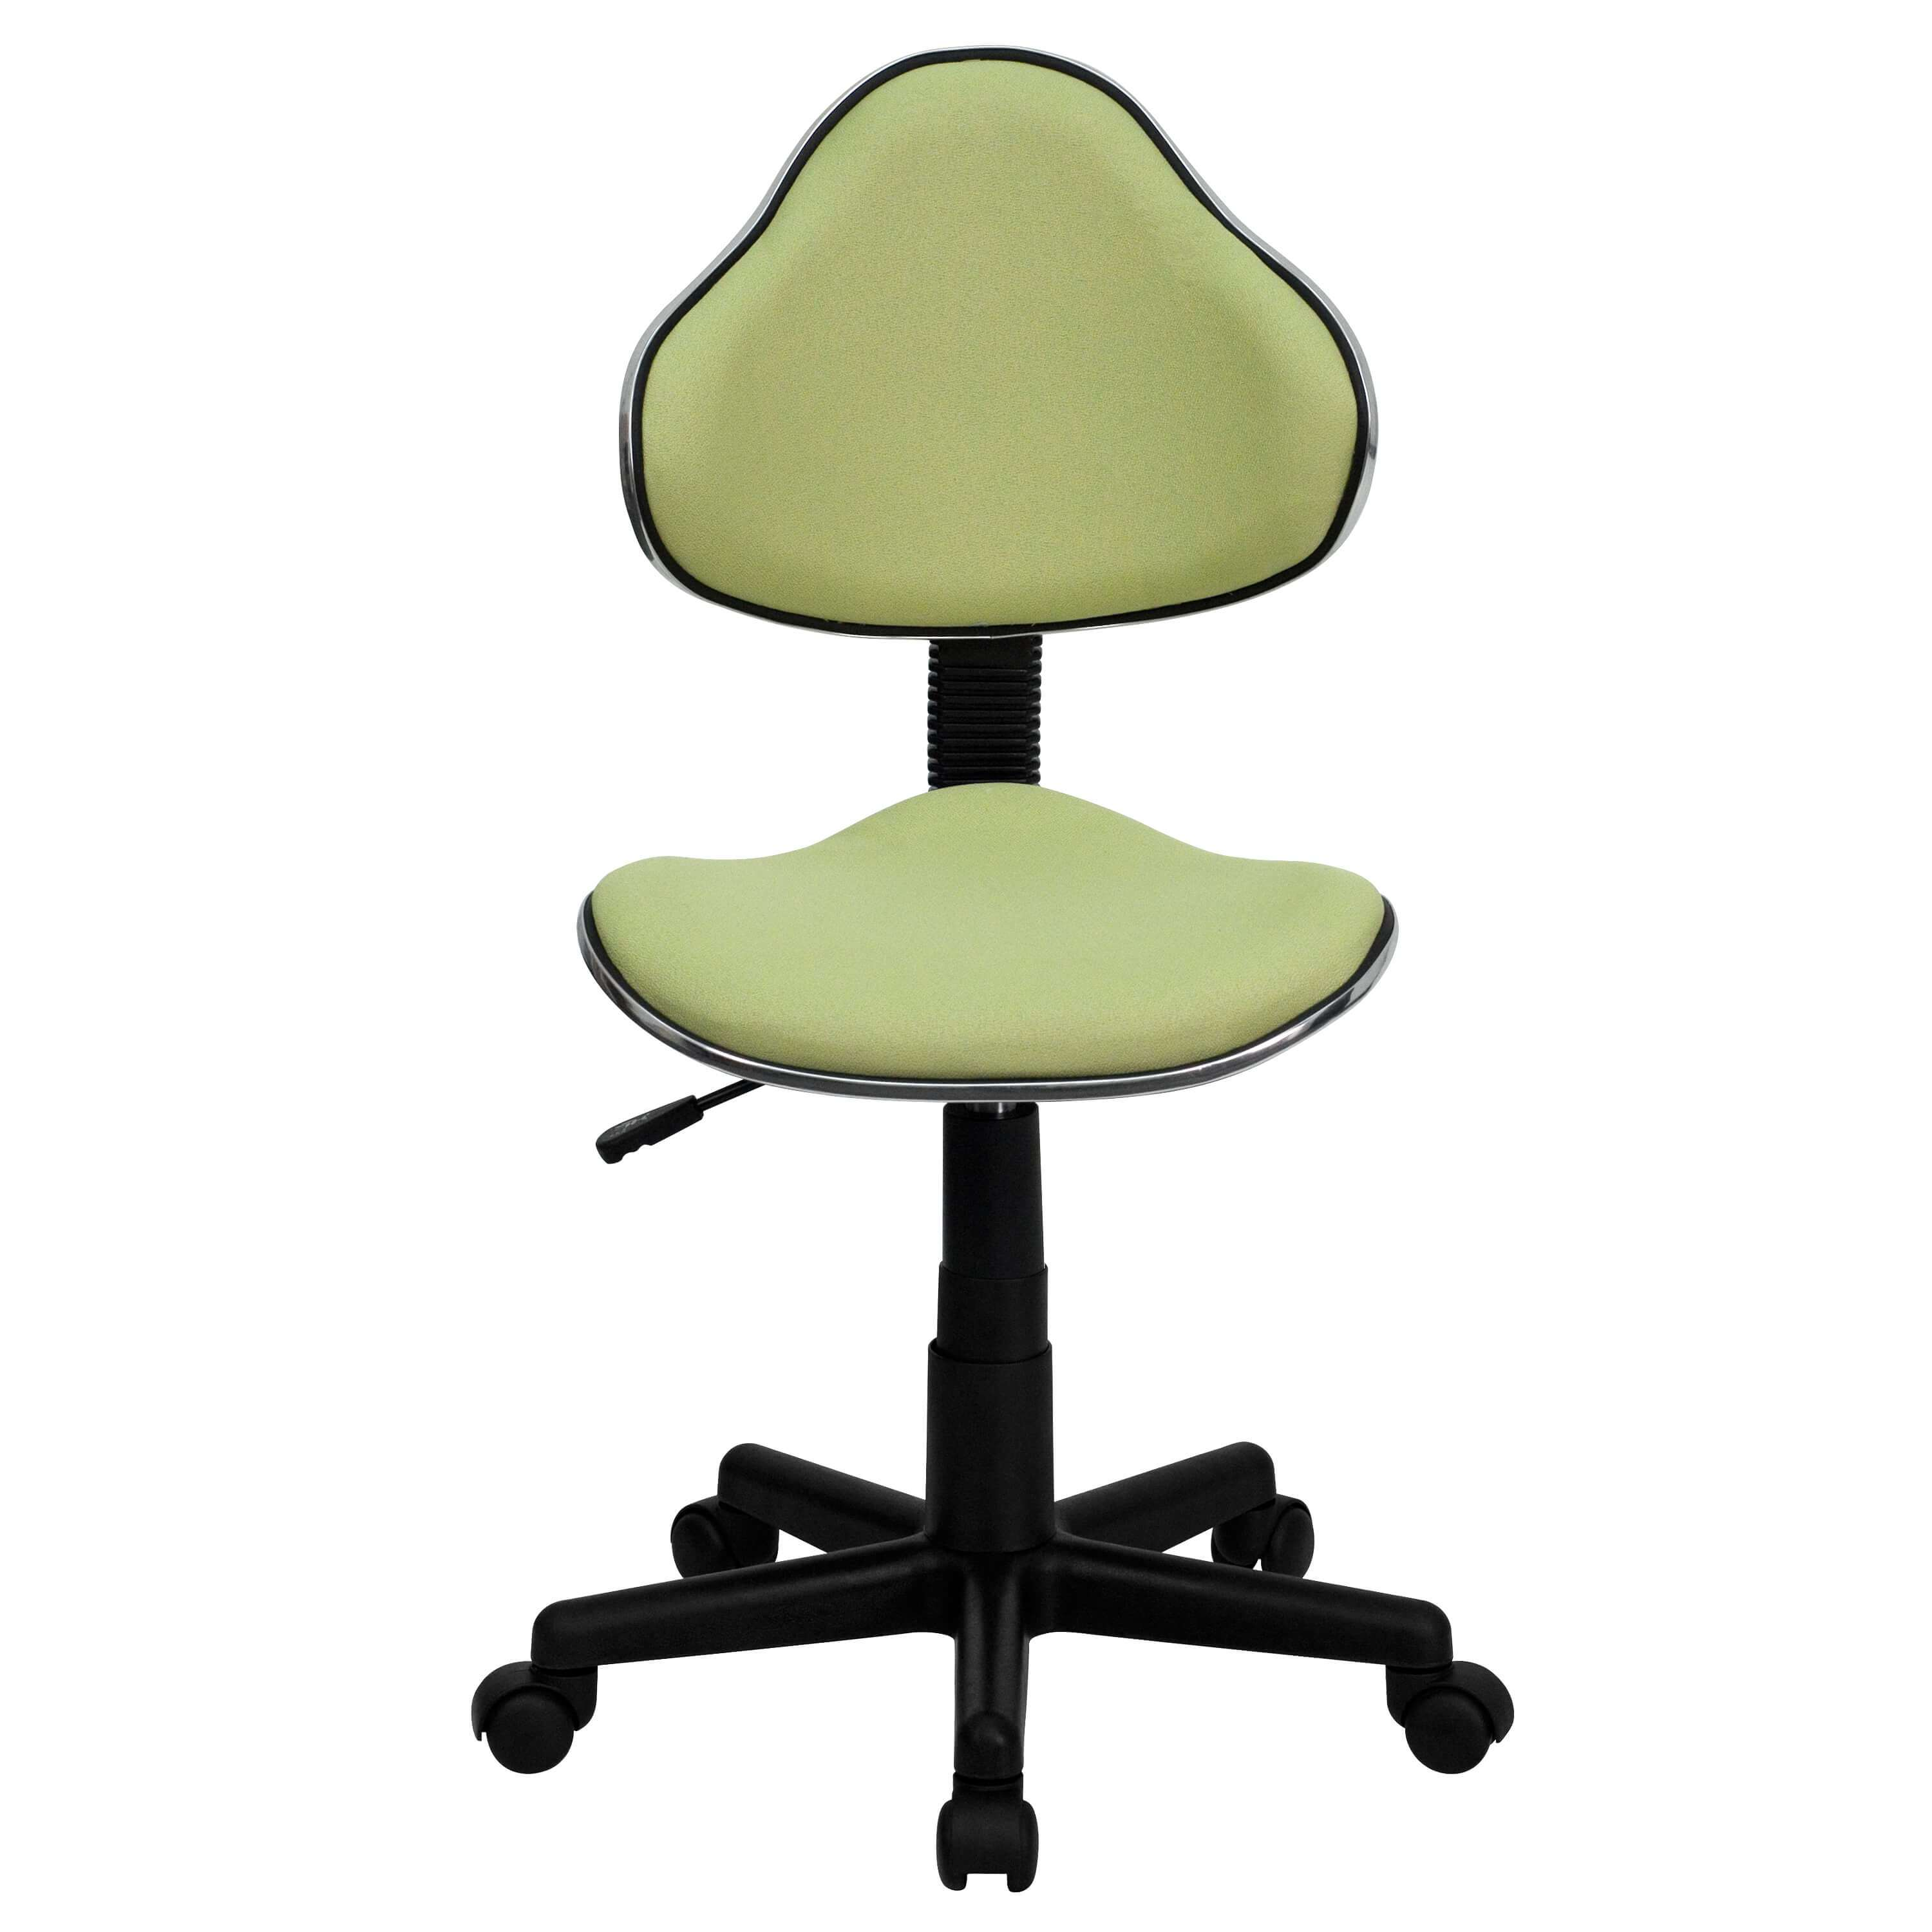 Colorful desk chairs CUB BT 699 AVOCADO GG FLA